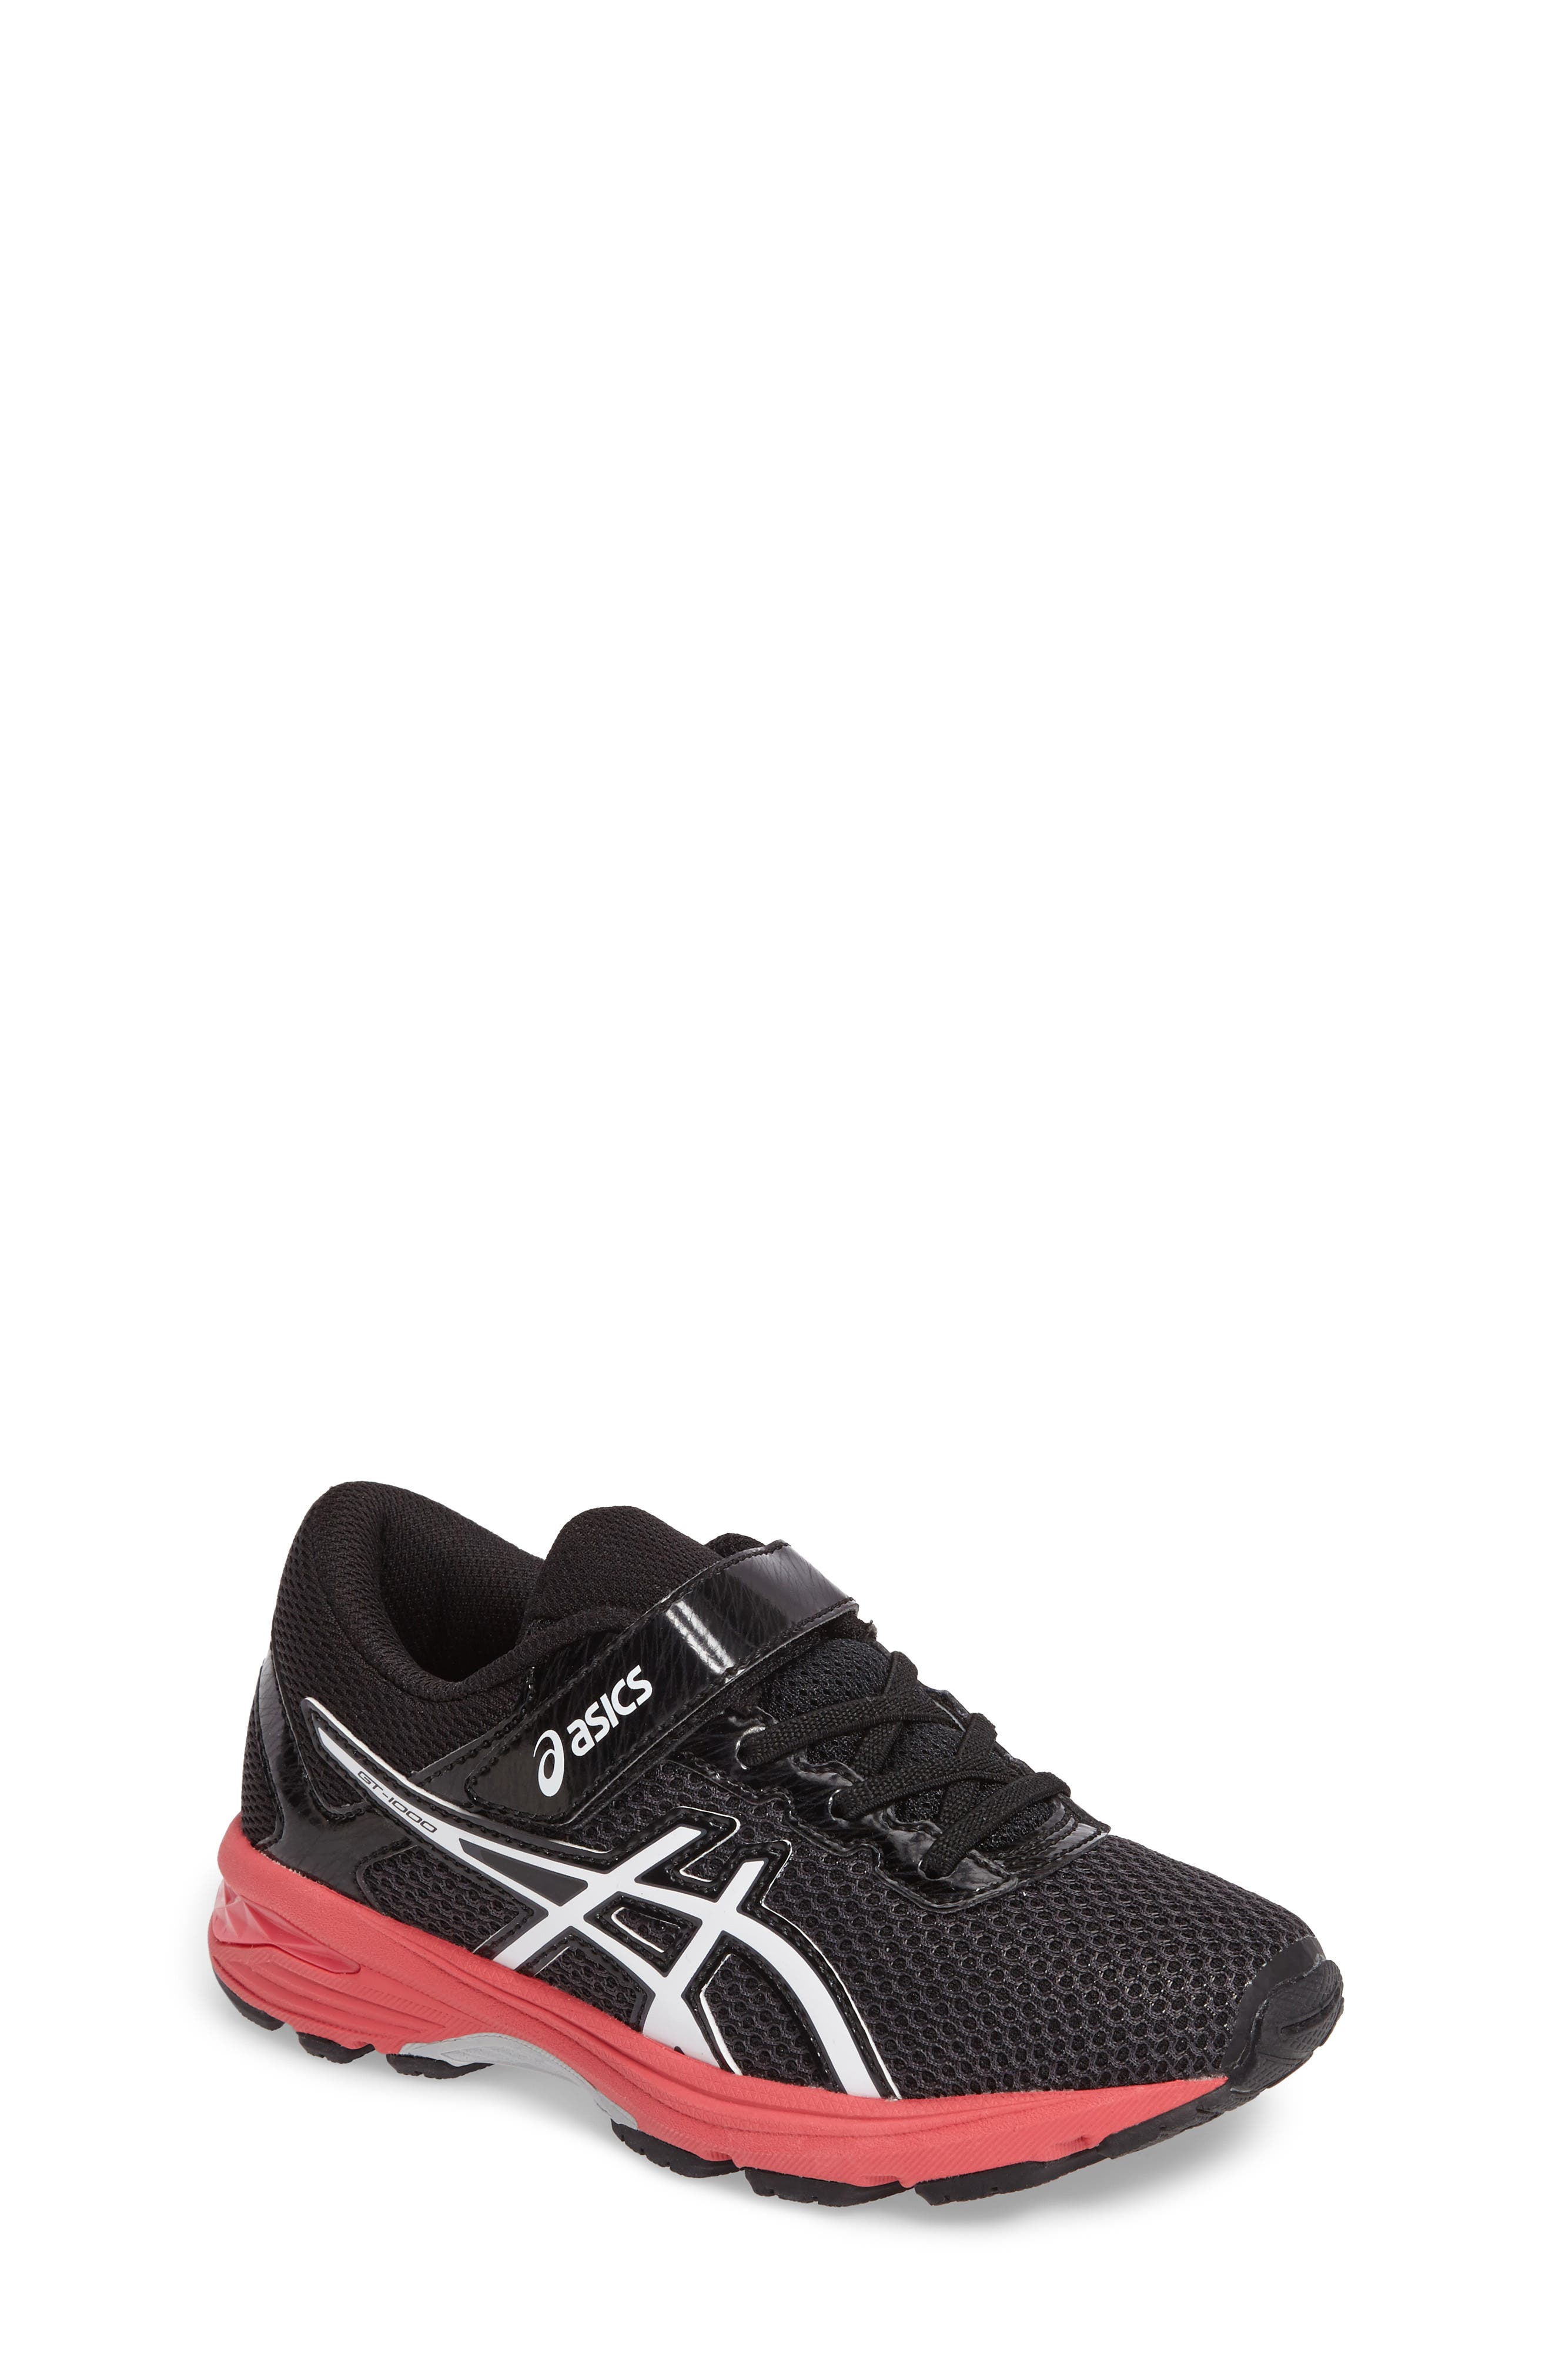 Asics GT-1000<sup>™</sup> 6 PS Sneaker,                             Main thumbnail 3, color,